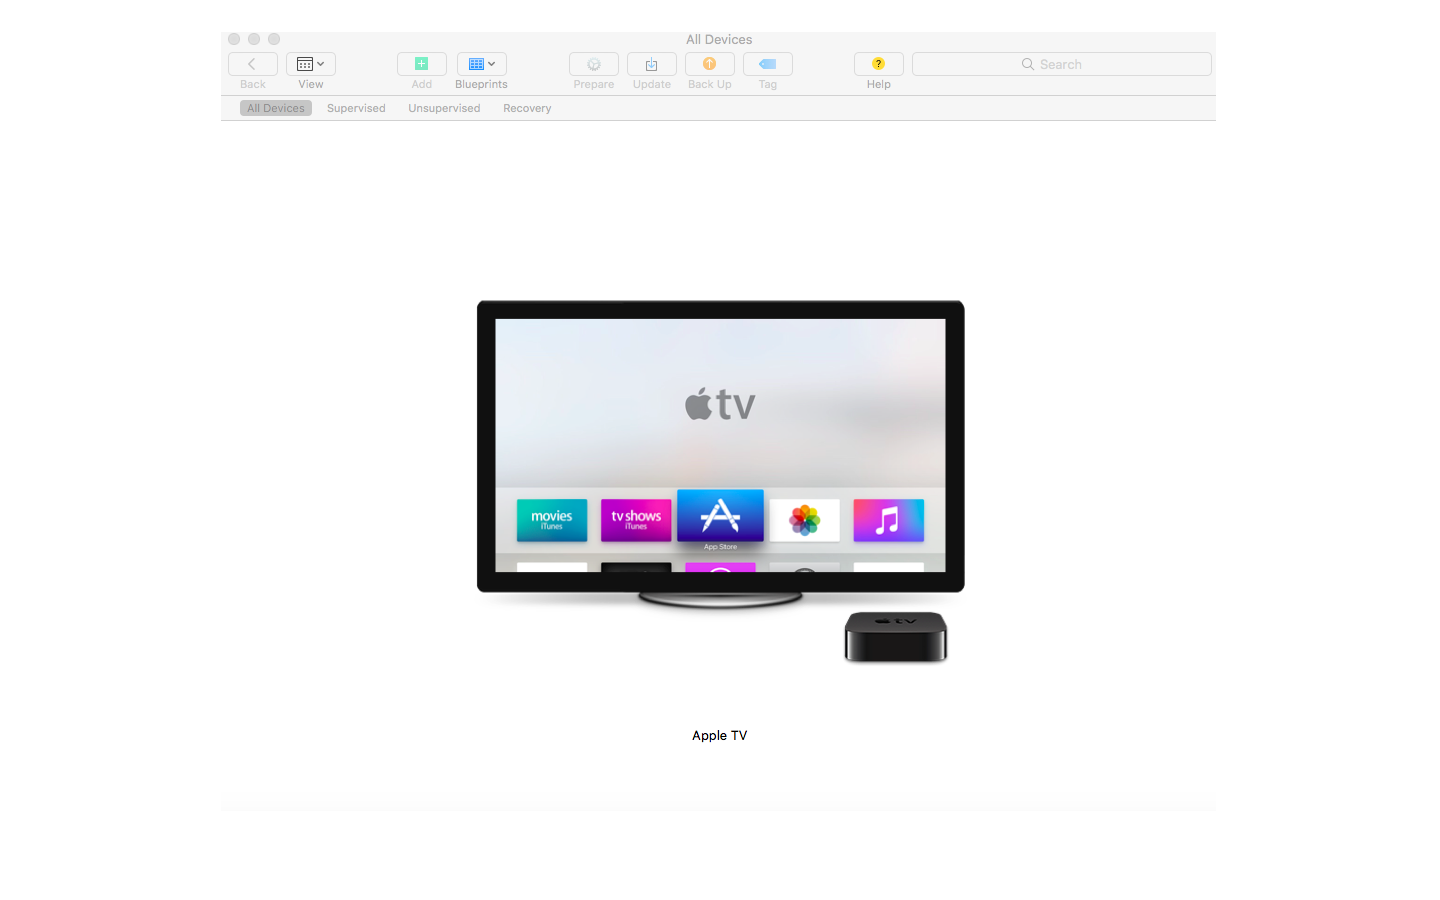 enroll apple tvs in hexnode mdm